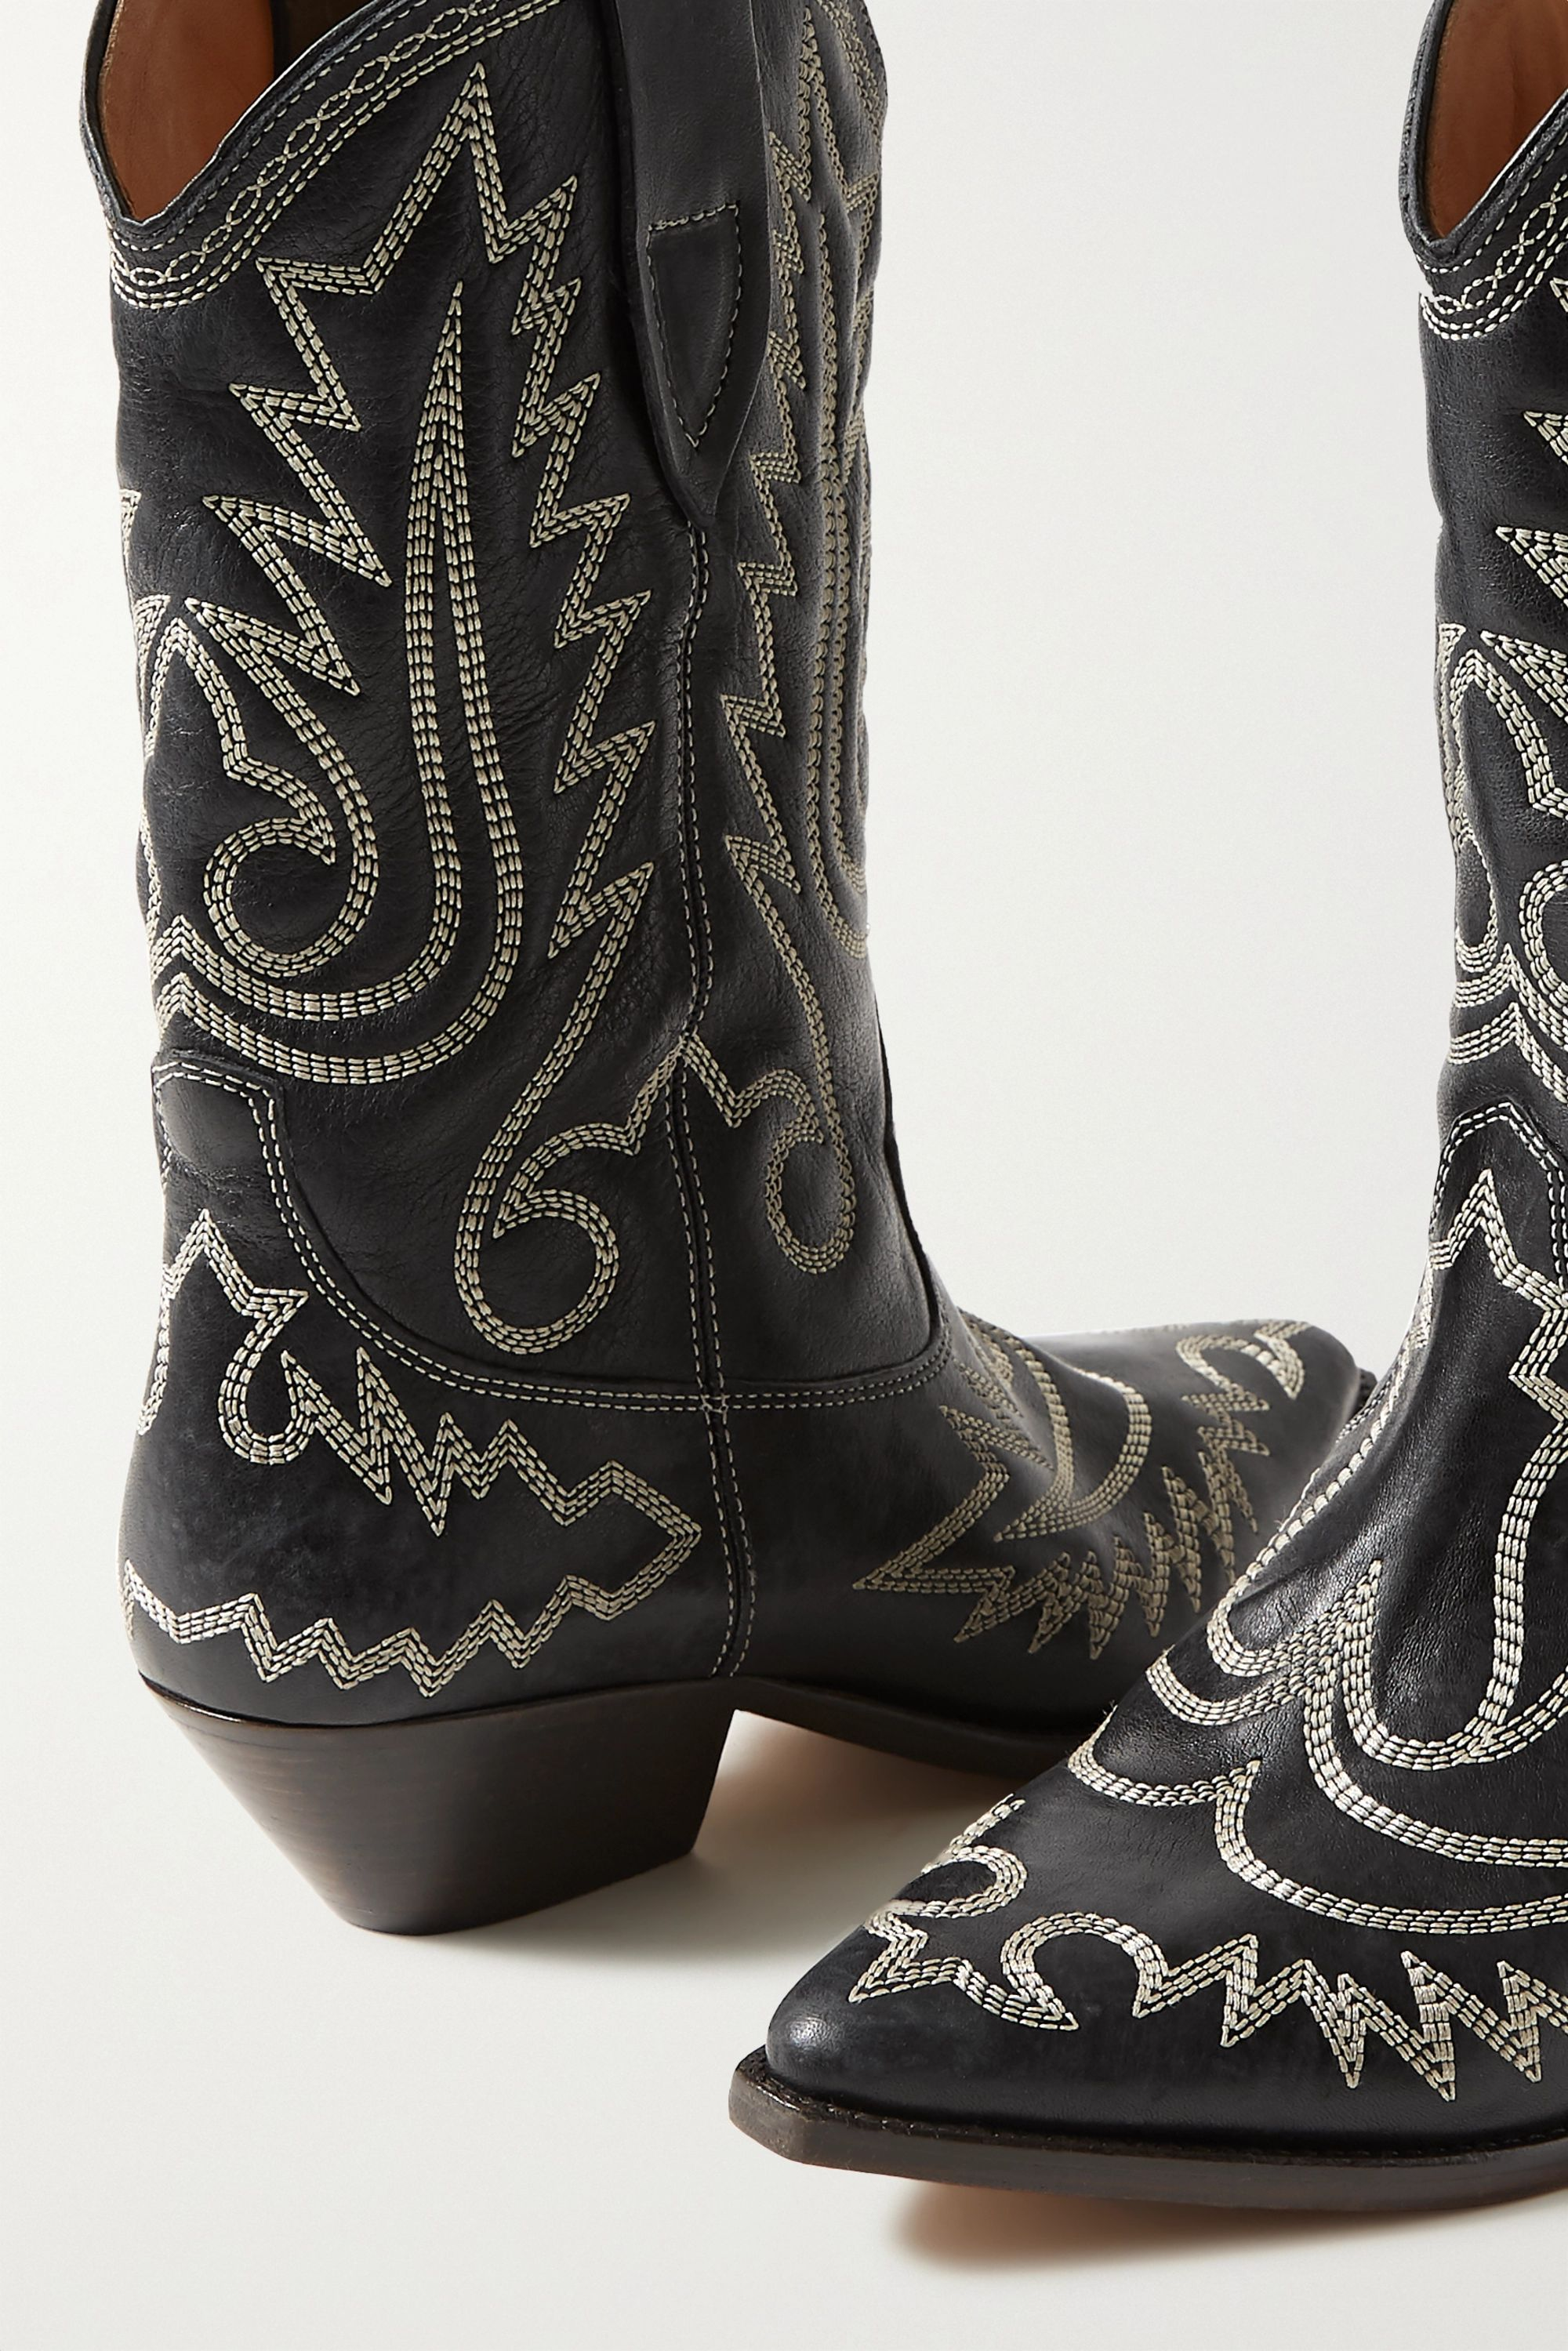 Isabel Marant Duerto embroidered leather boots